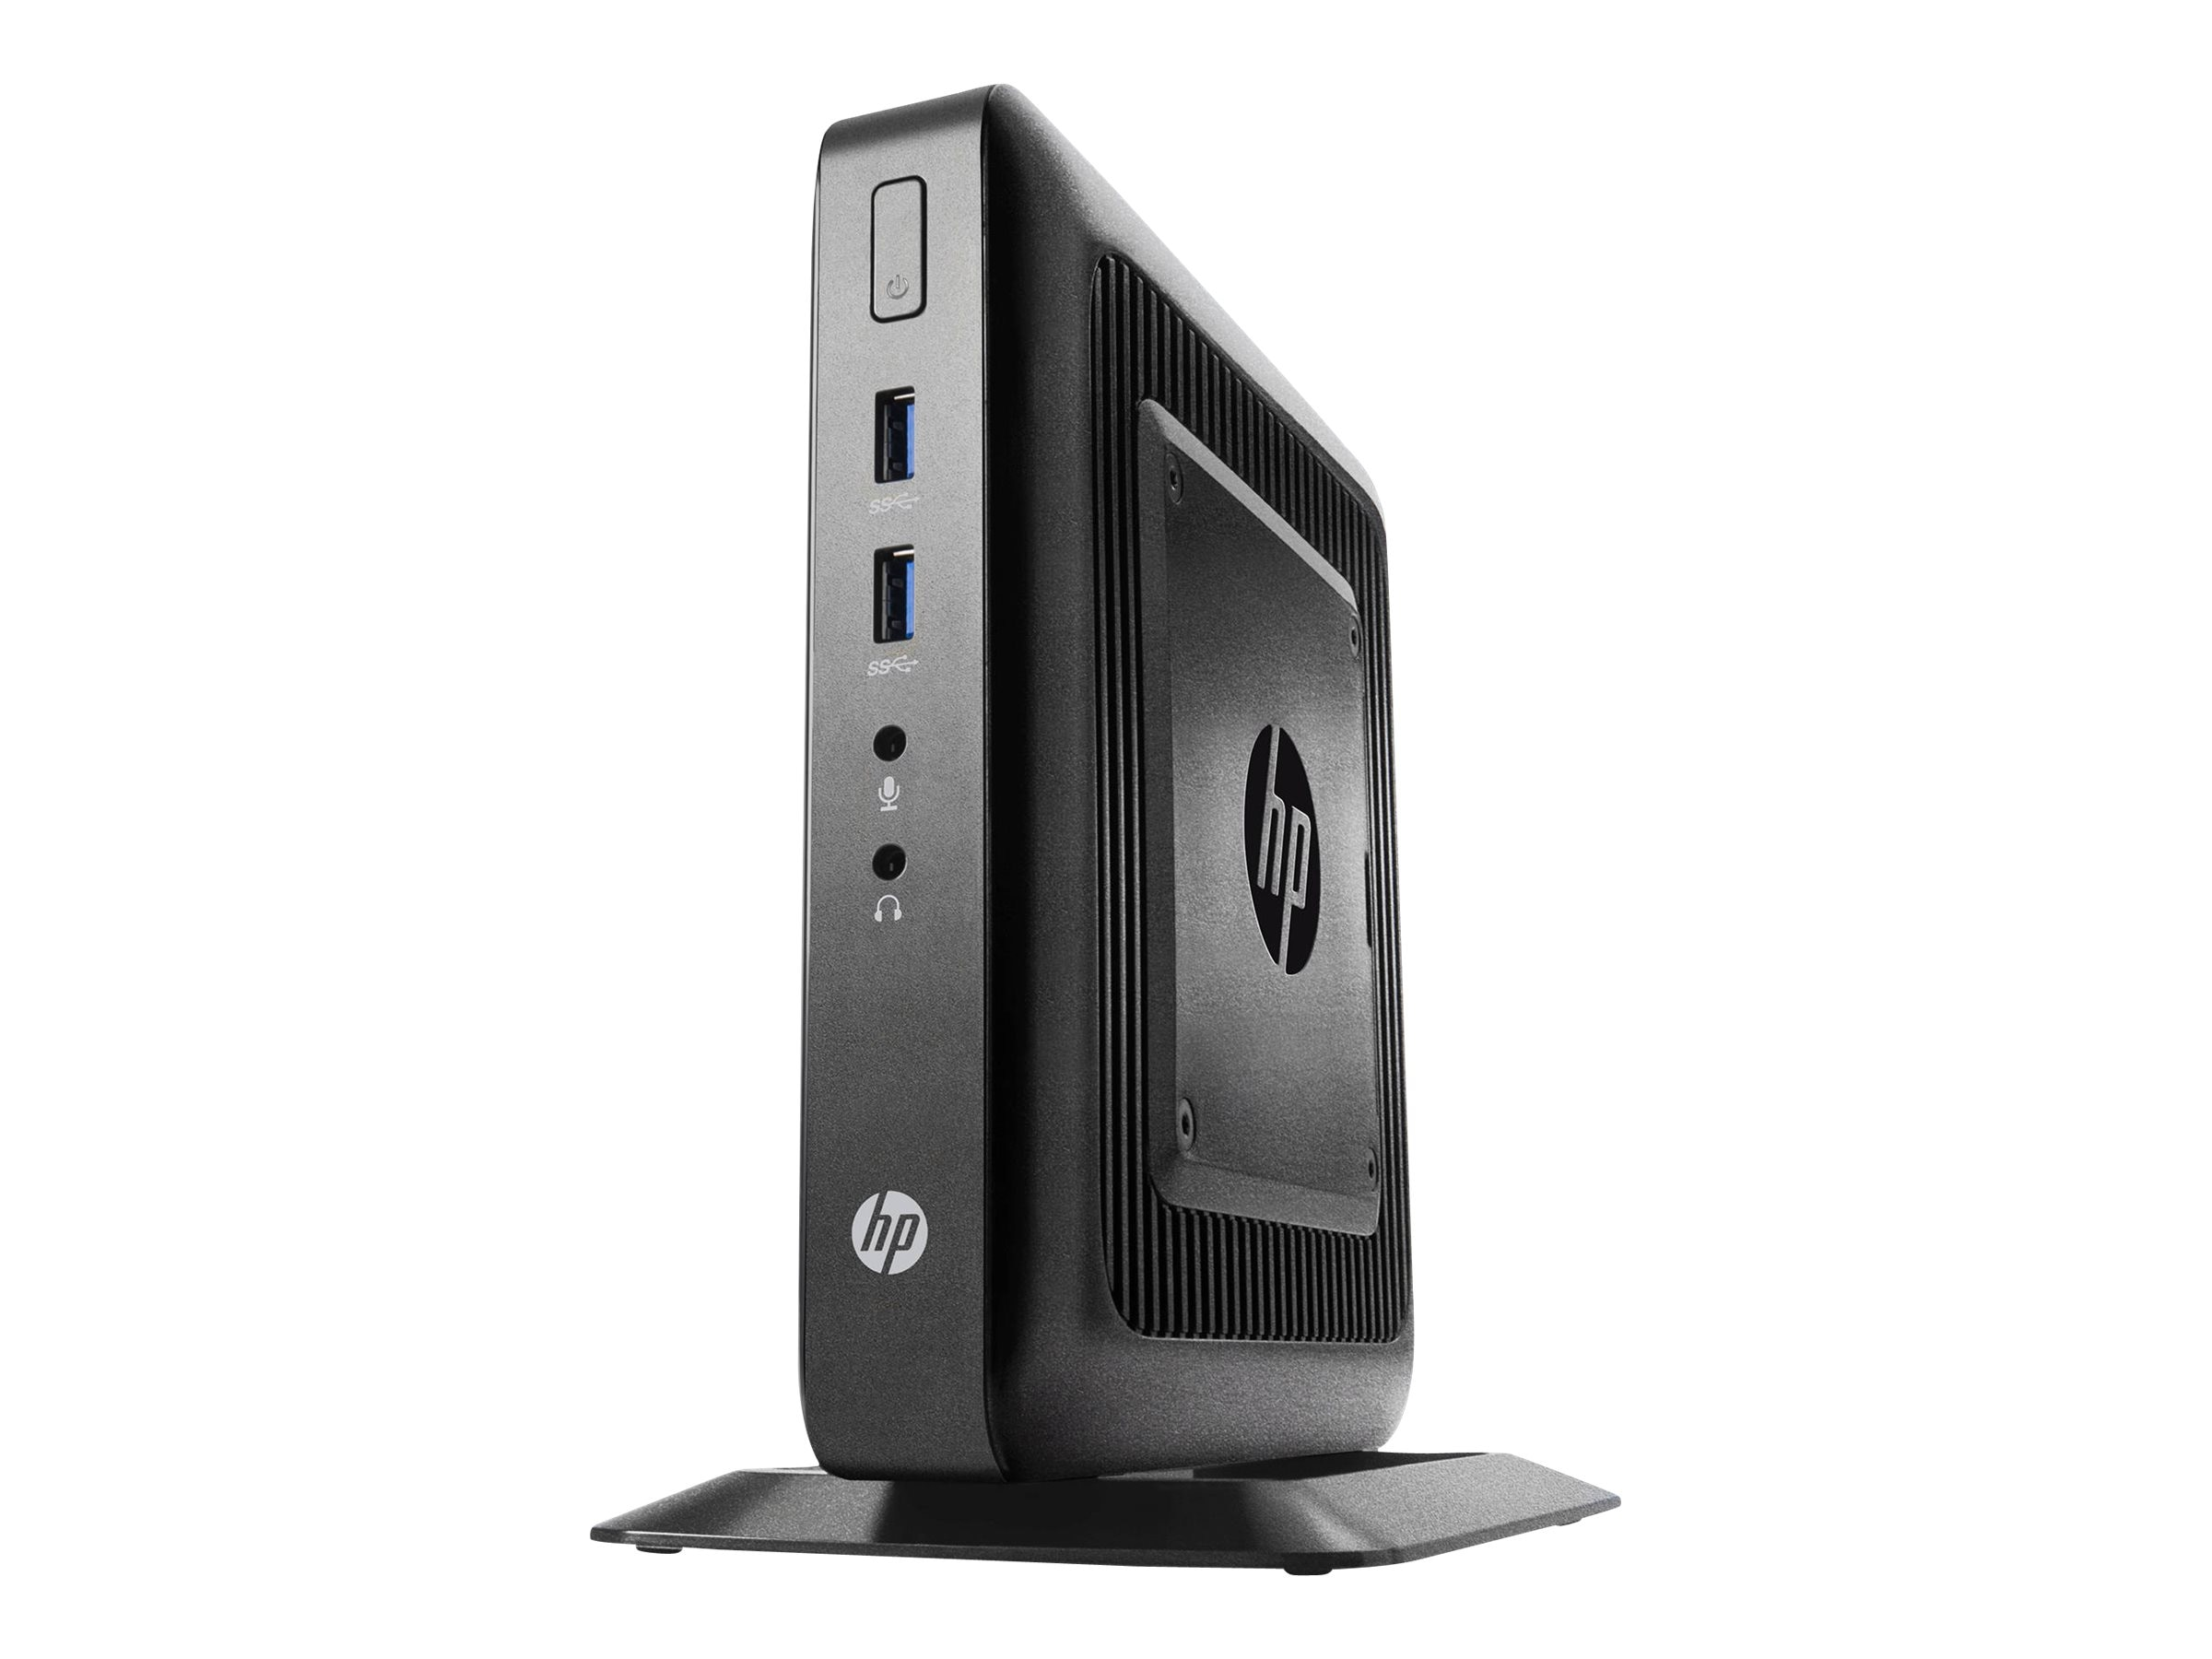 HP t520 Flexible Thin Client AMD DC GX-212JC 1.2GHz 4GB 16GB Flash HD8000 abgn BT WE864